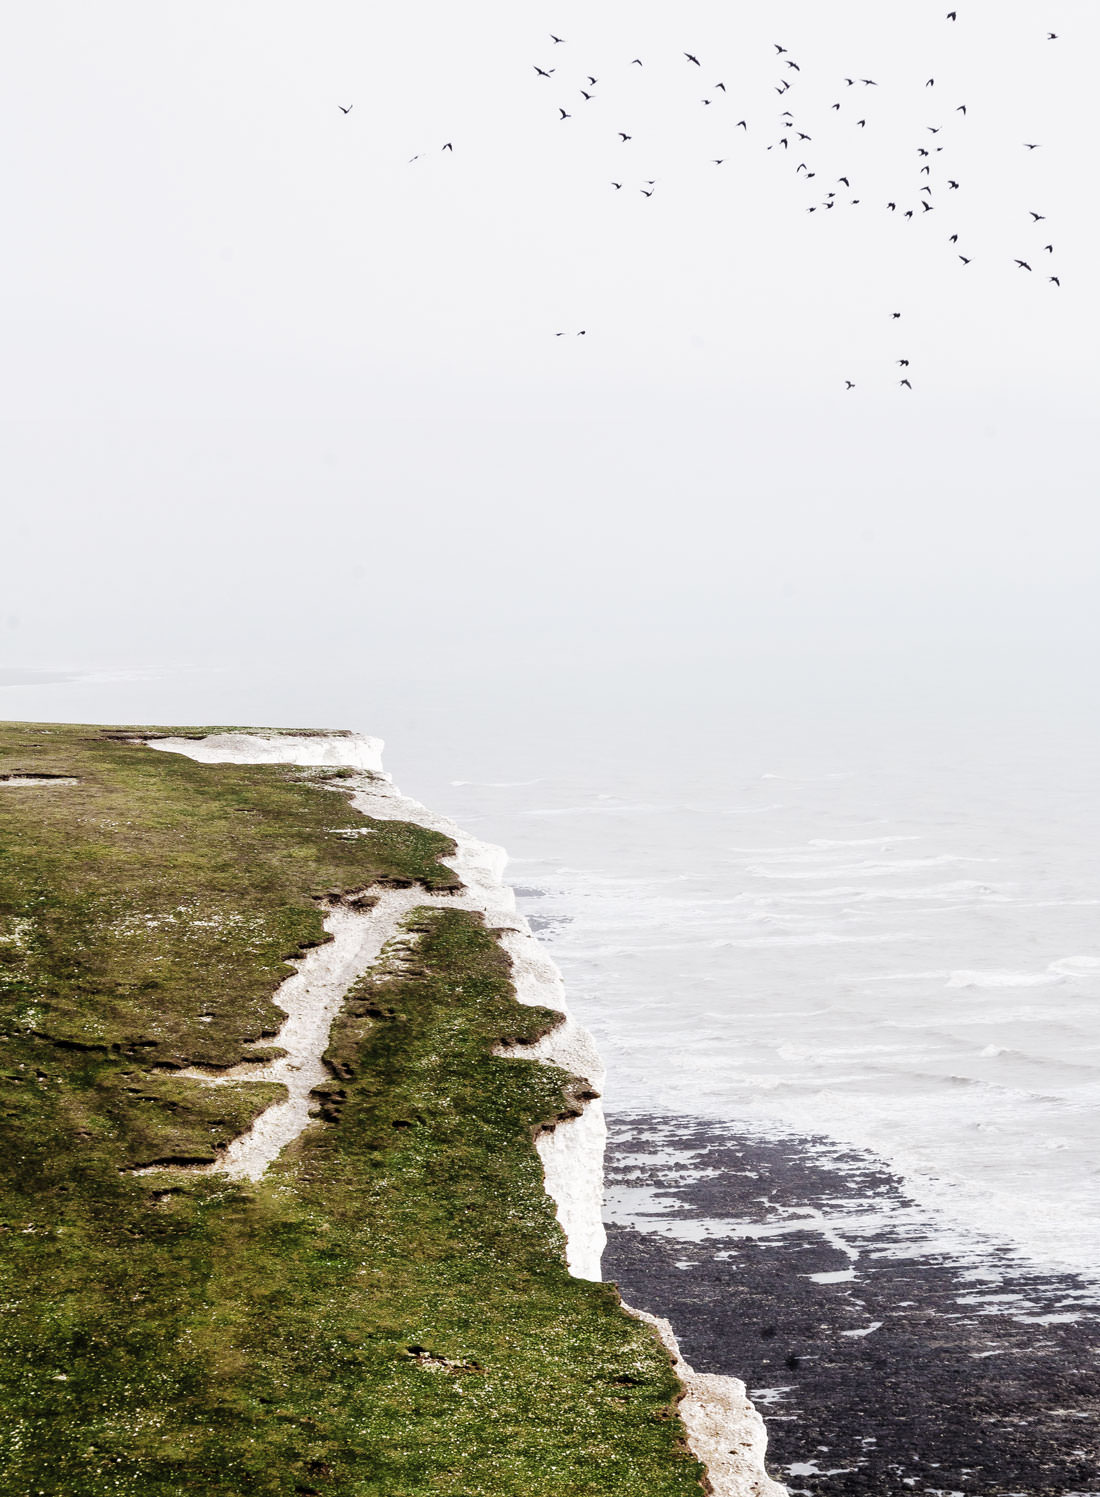 The Seven Sisters cliffs - a guide to the best viewpoints